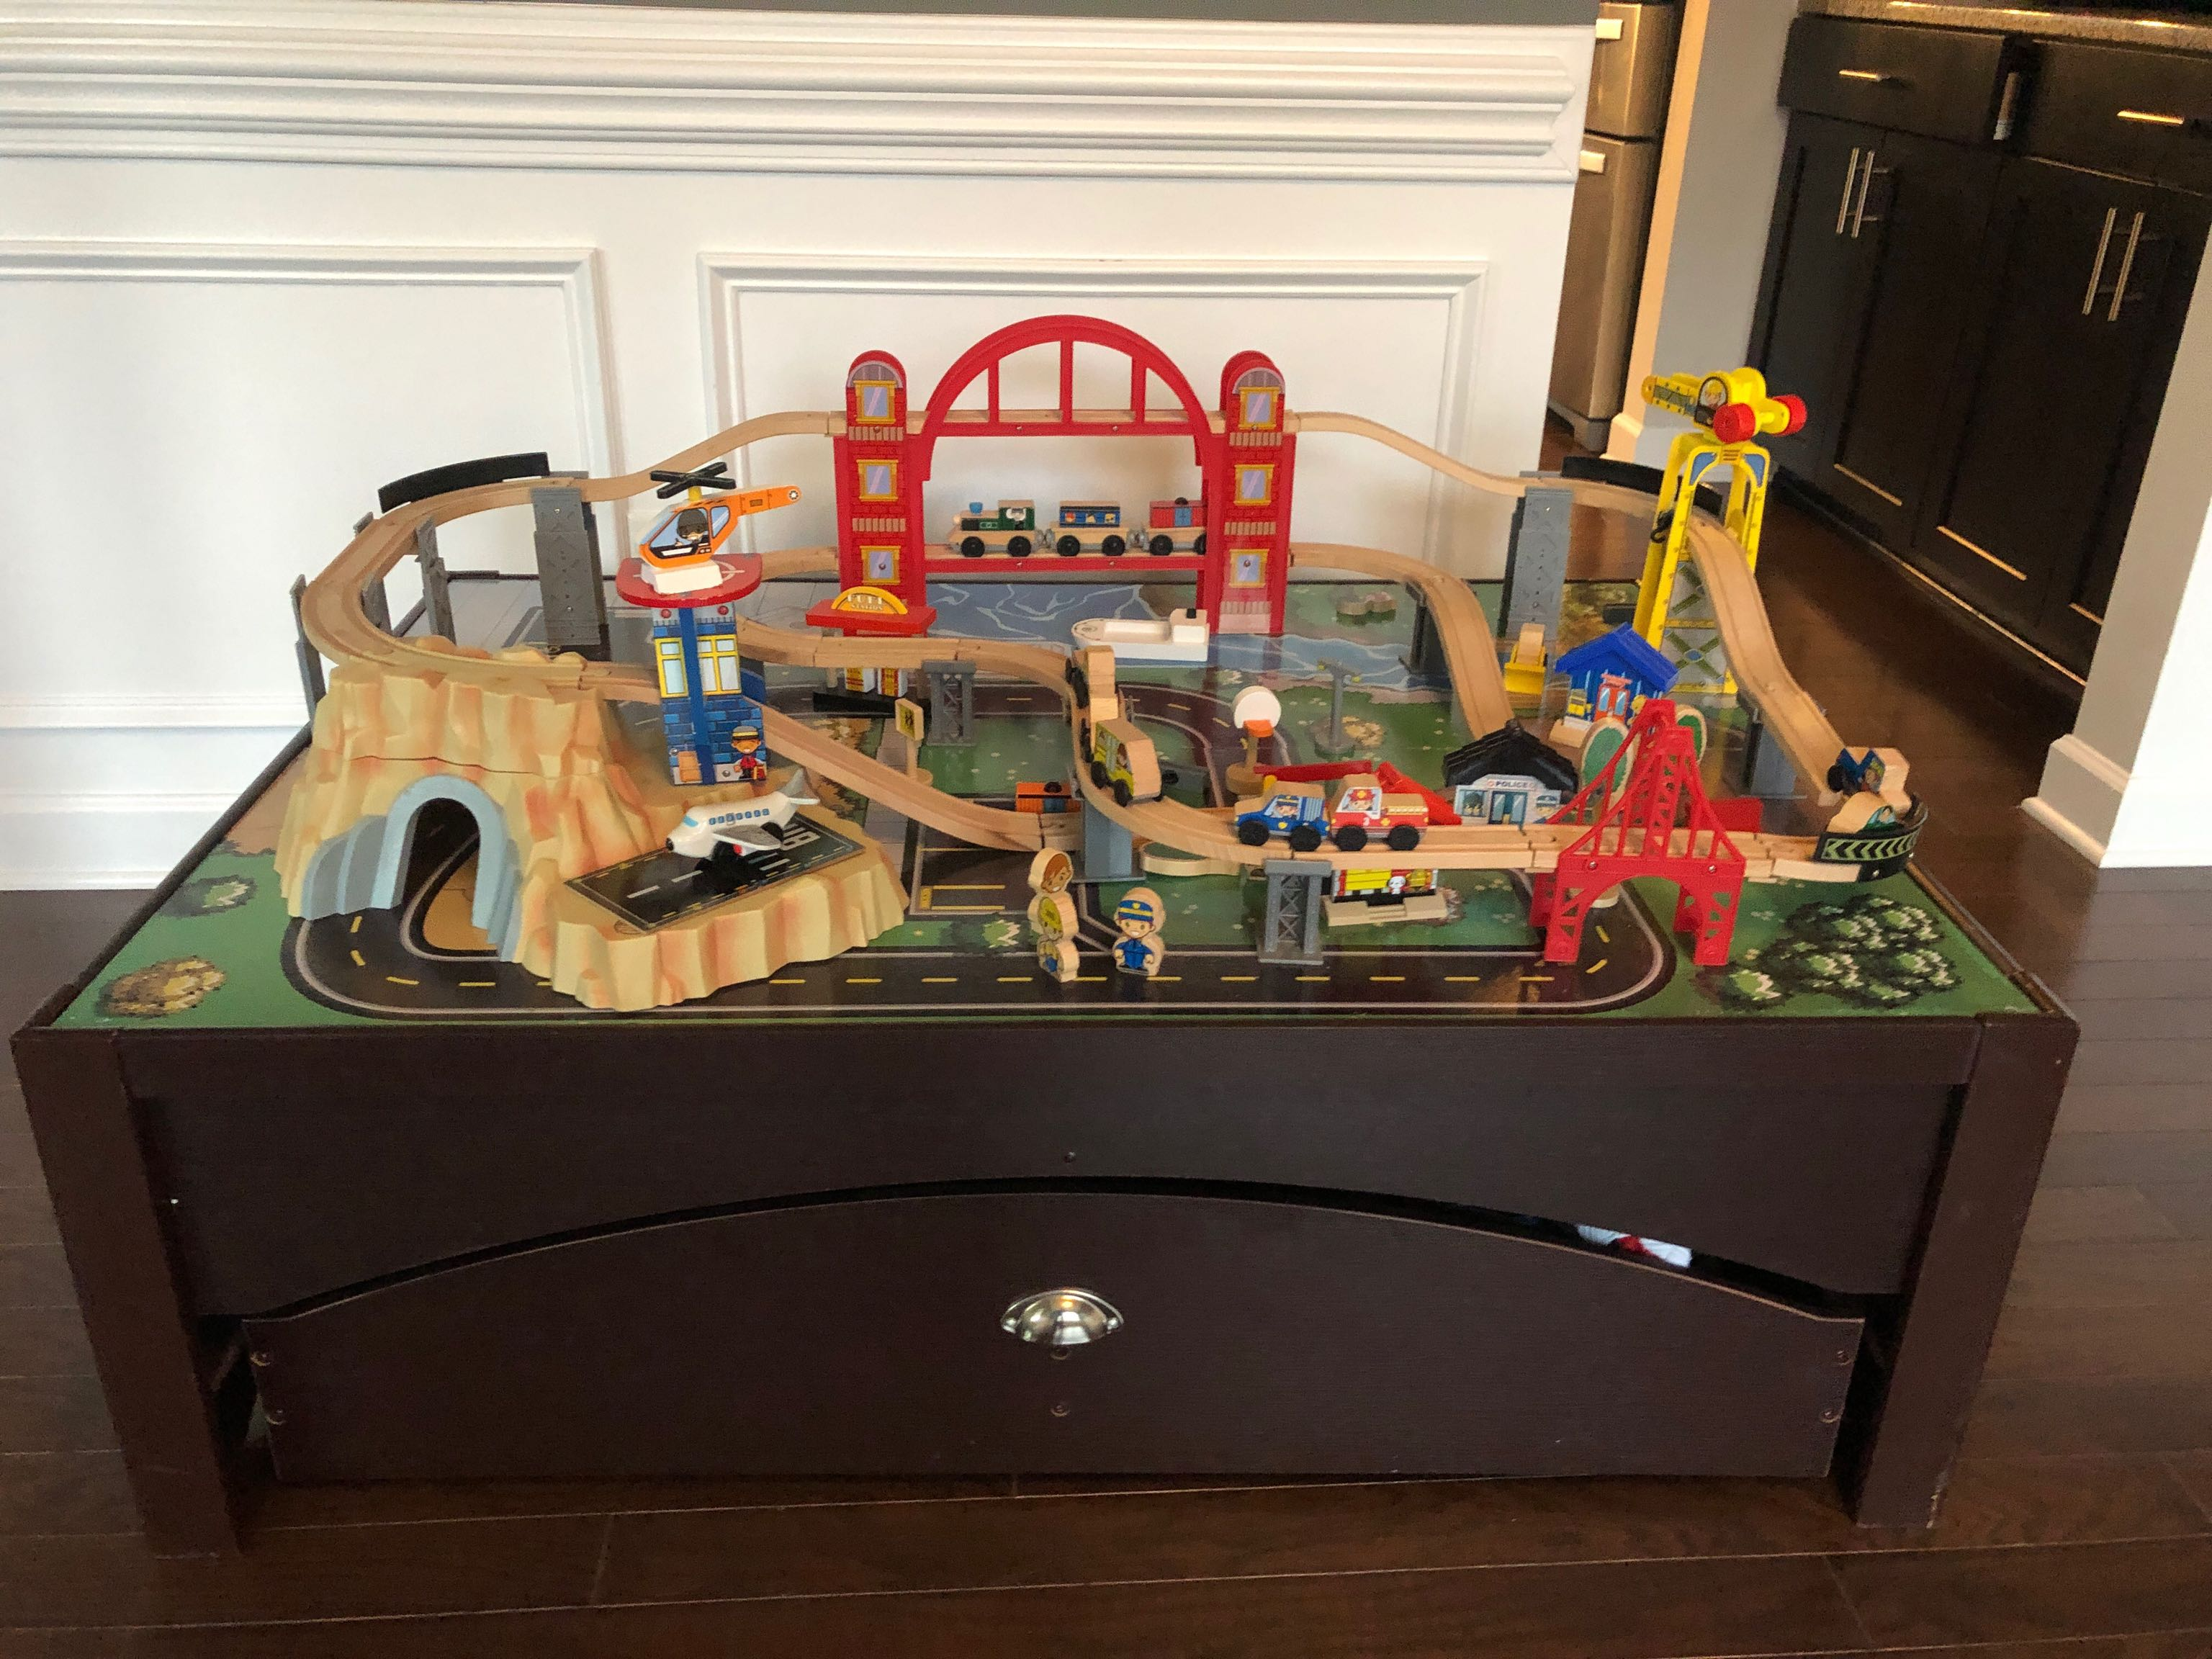 KidKraft Train Set and Table with accessories included